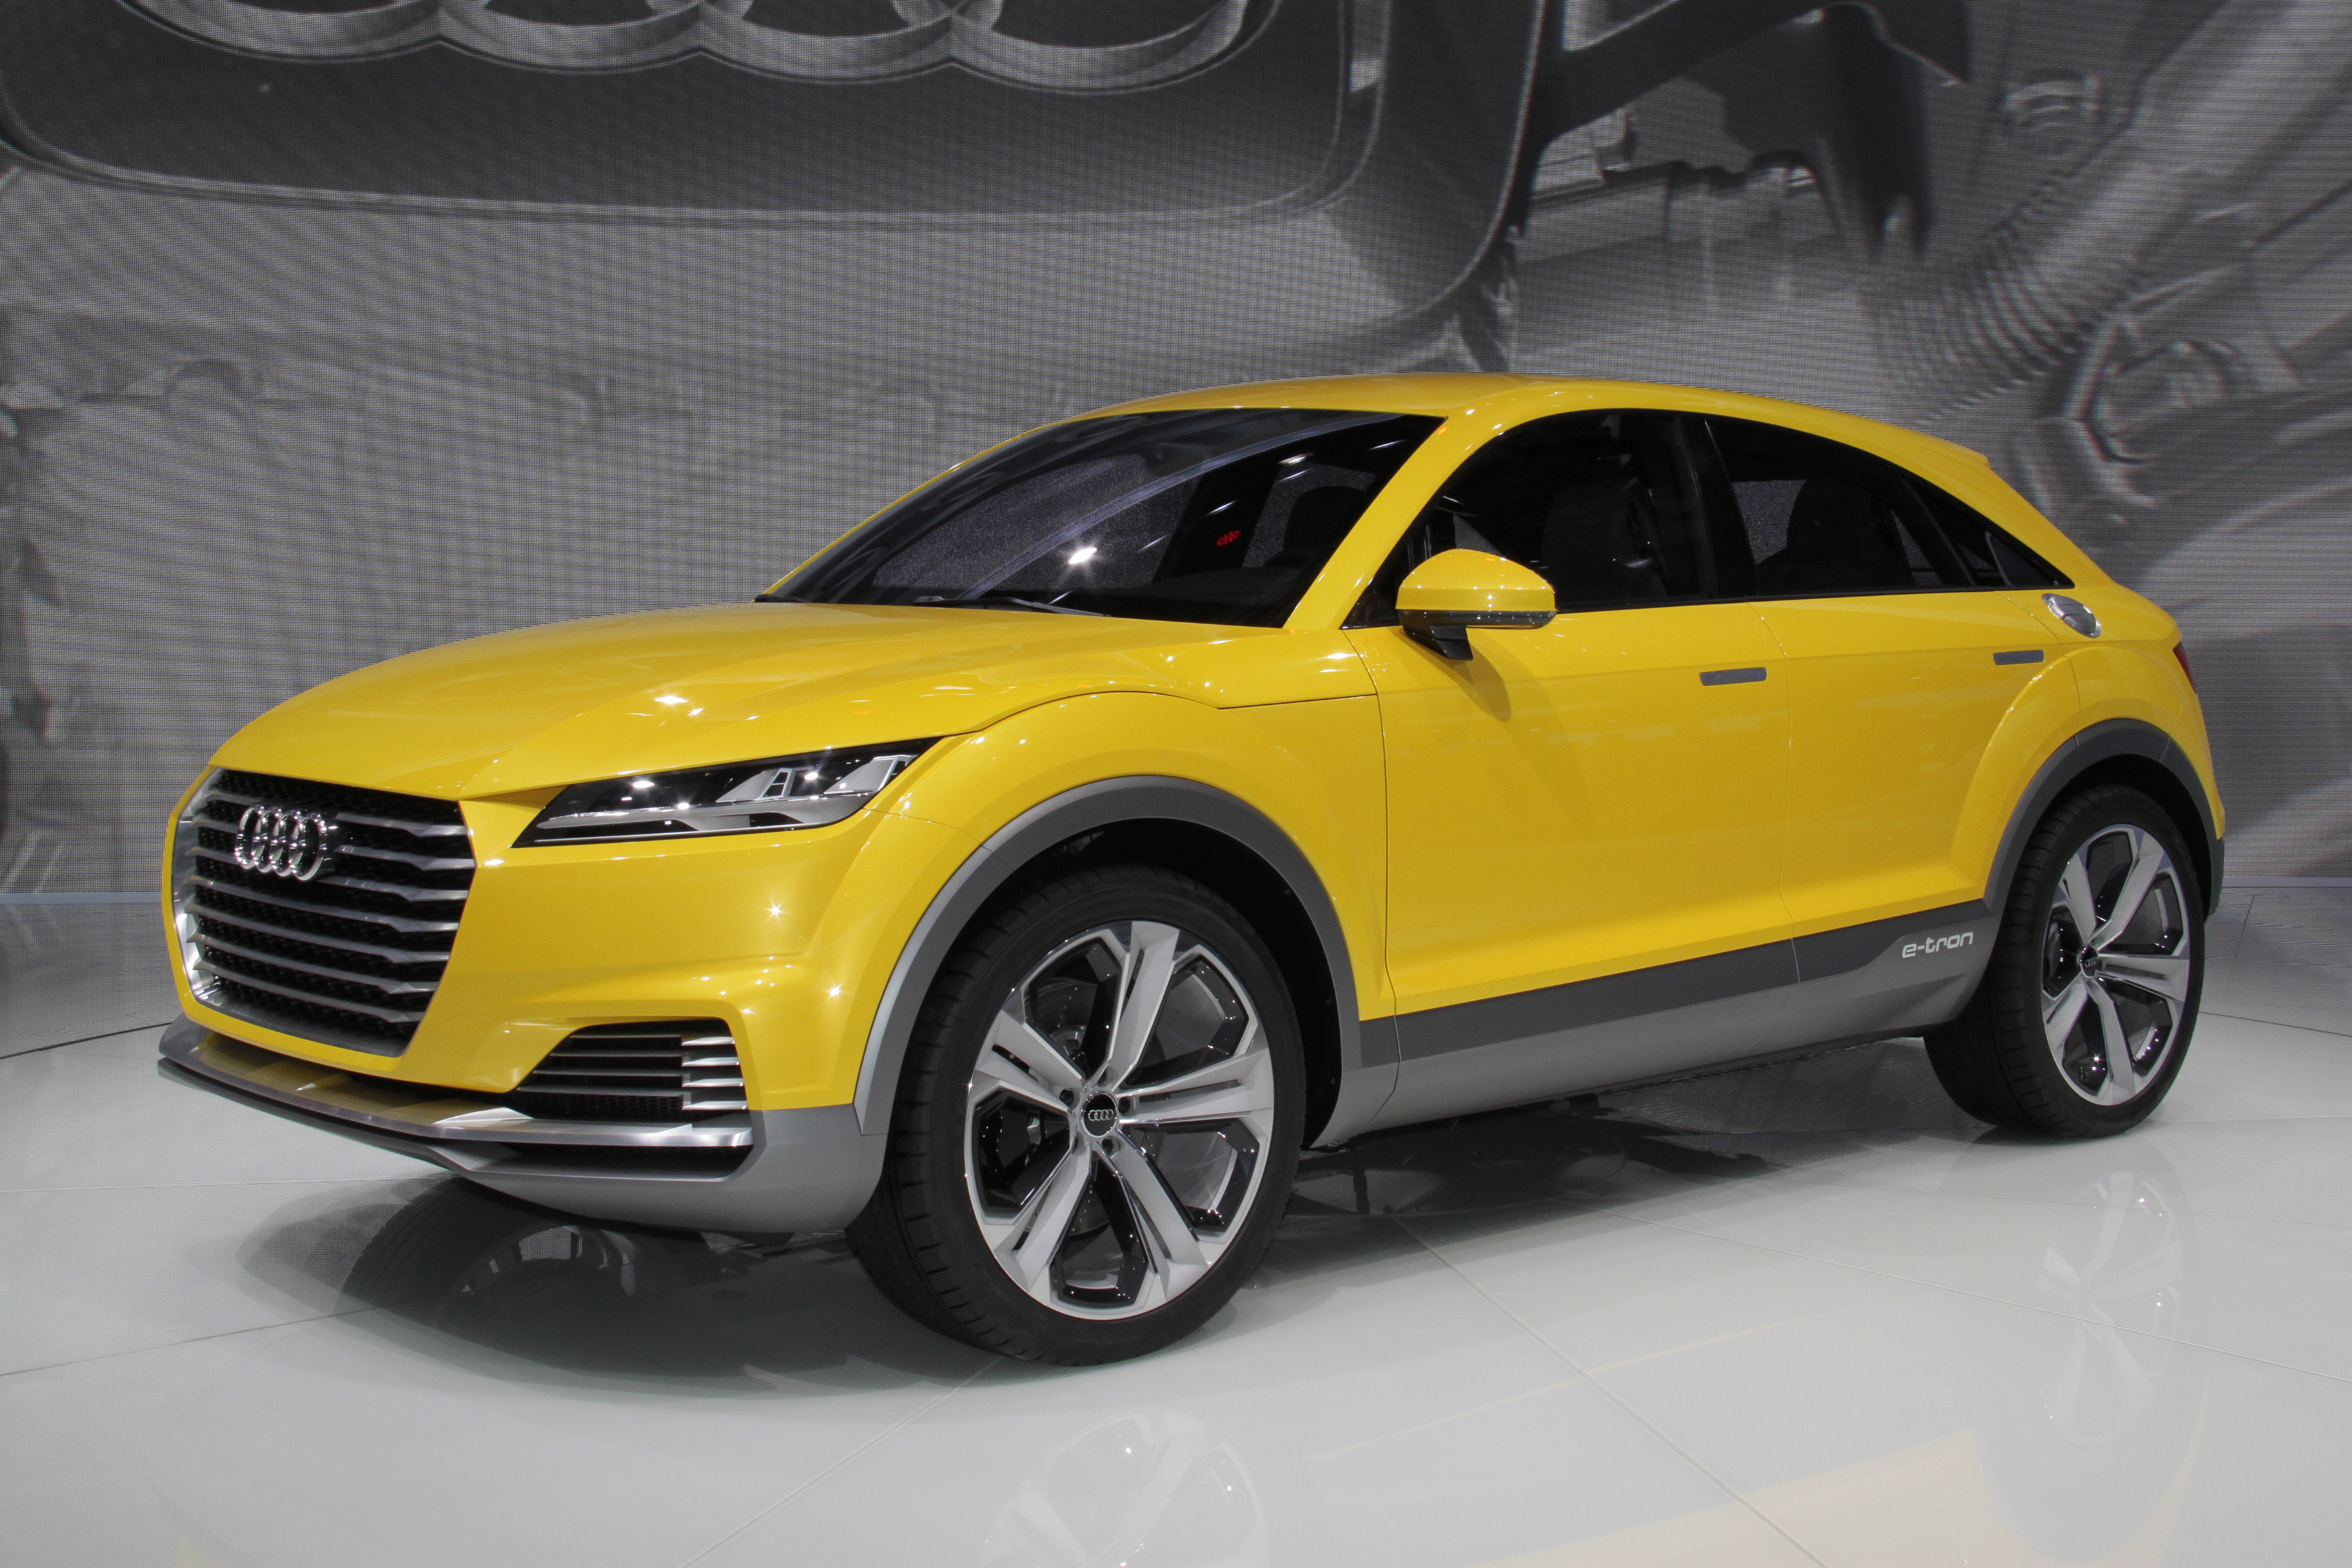 Audi Build Your Own >> File:Audi TT Offroad Concept (22).JPG - Wikimedia Commons